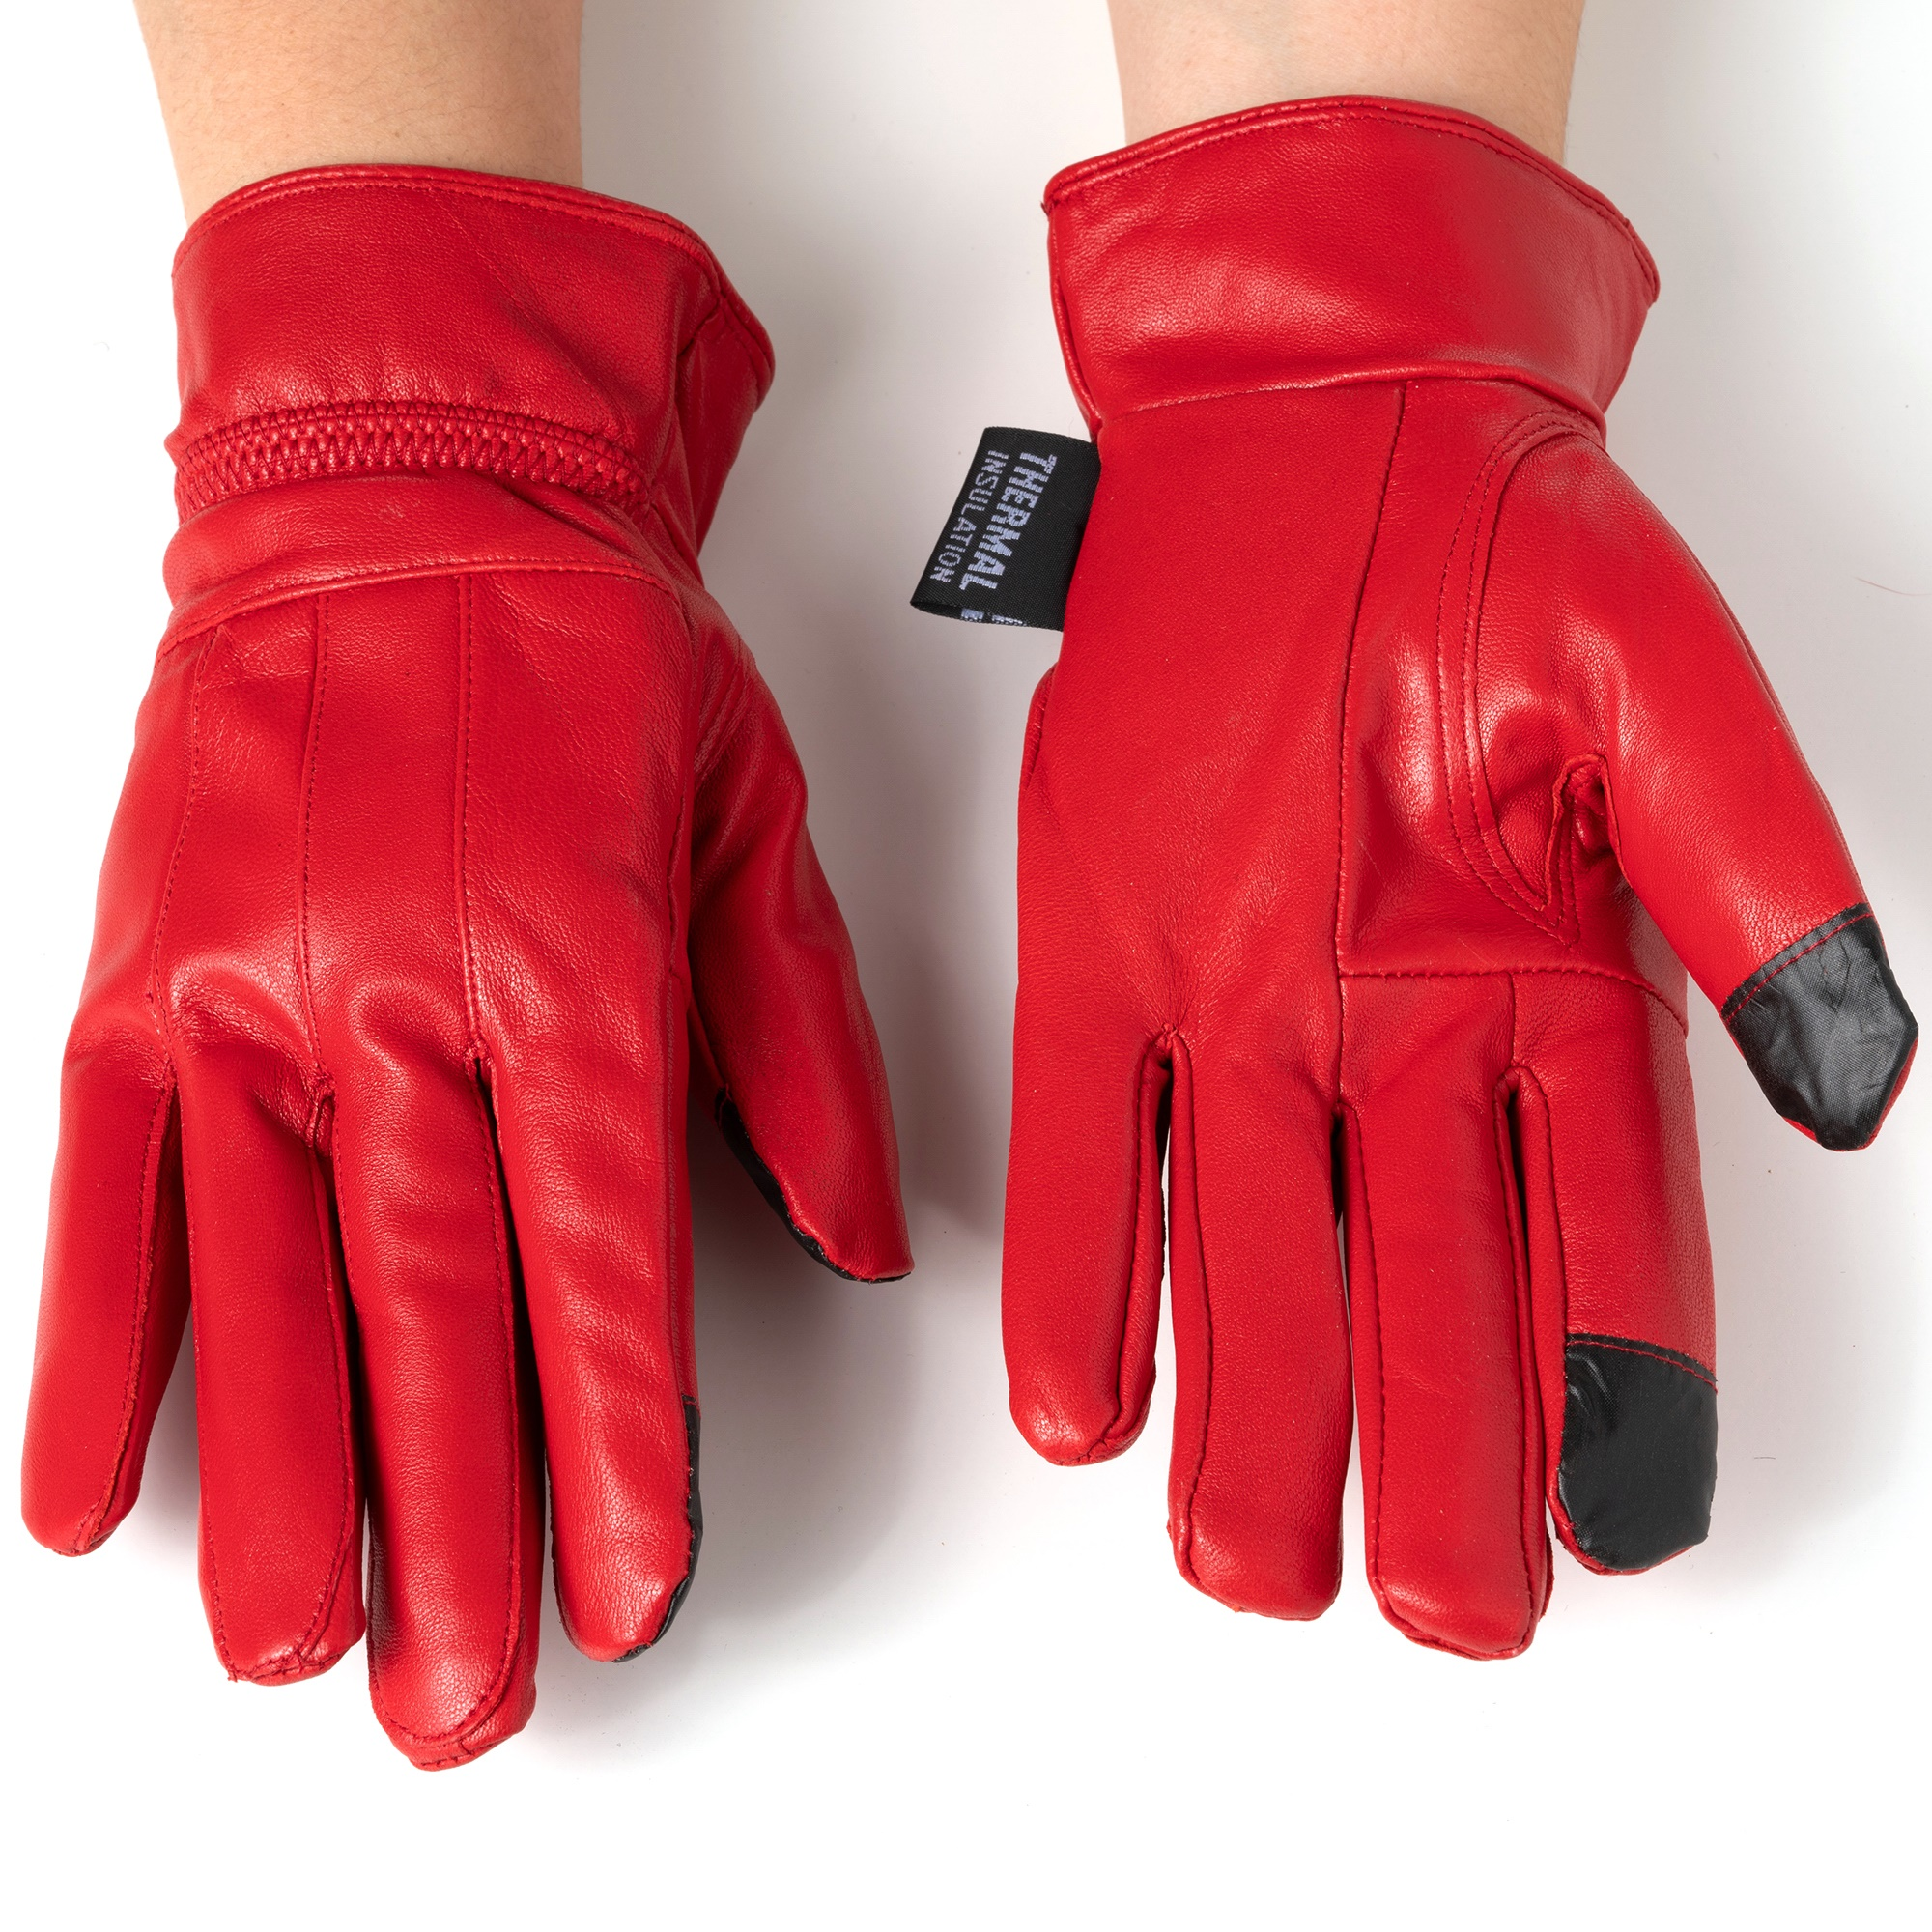 Alpine-Swiss-Womens-Touch-Screen-Gloves-Leather-Phone-Texting-Glove-Thermal-Warm thumbnail 32